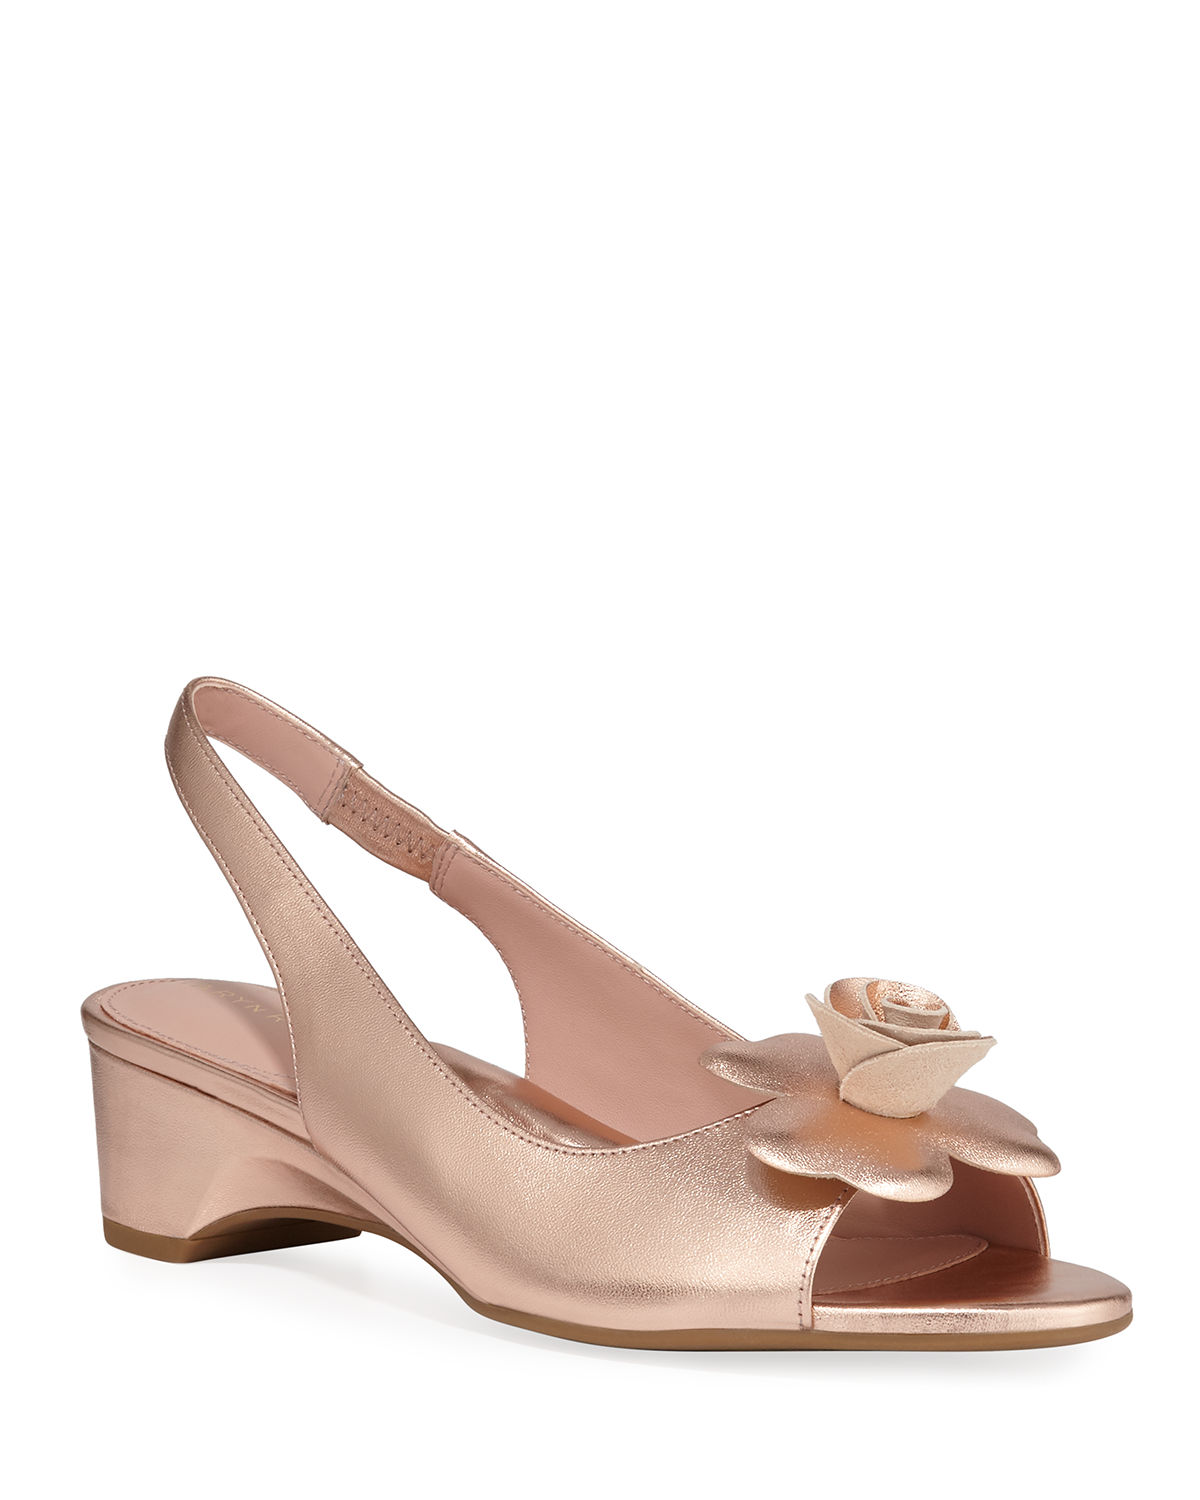 Neva Metallic Demi-Wedge Flower Sandals